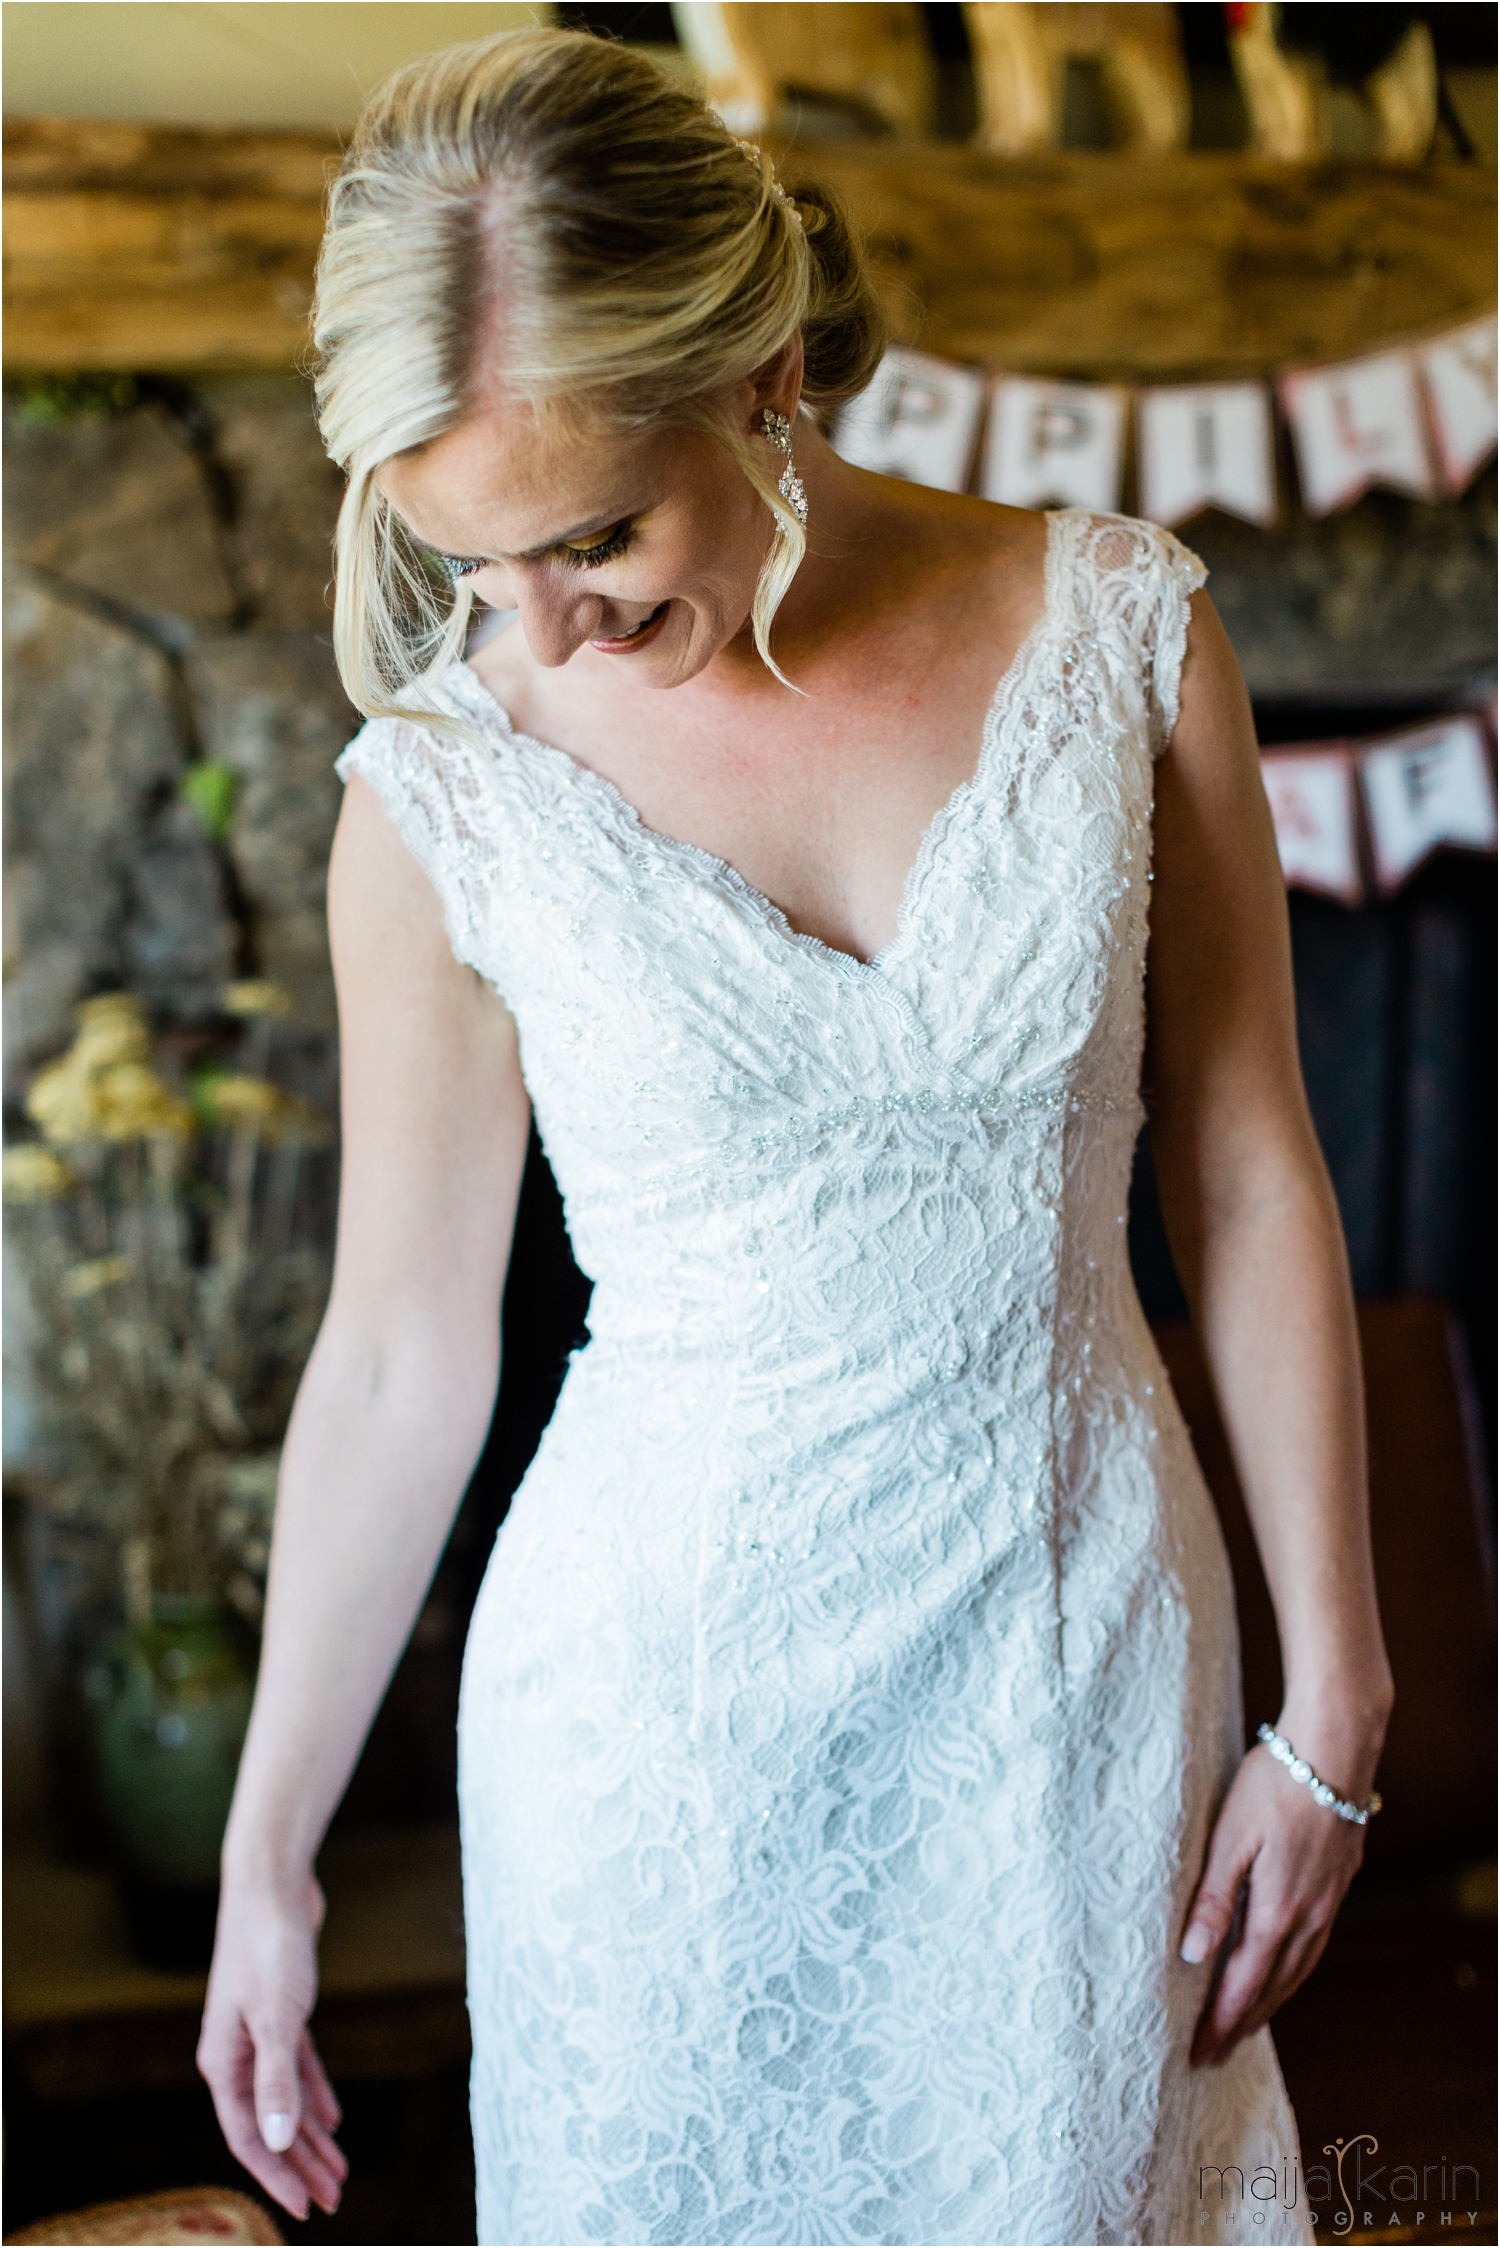 McCall-Idaho-Wedding-Maija-Karin-Photography_0010.jpg